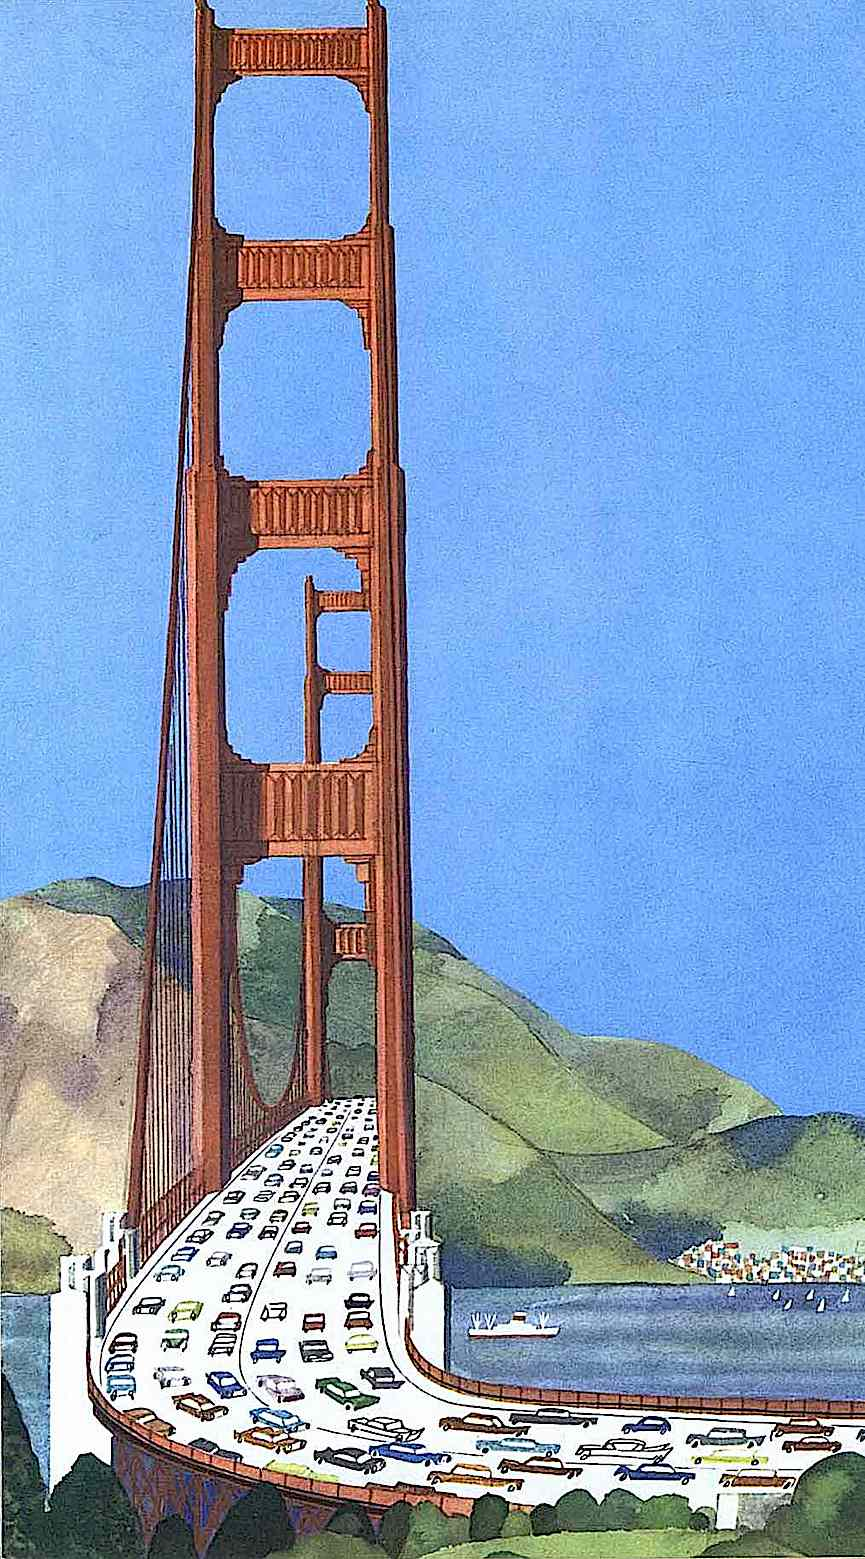 a color illustration of a bridge from a Miroslav Sasek children's book